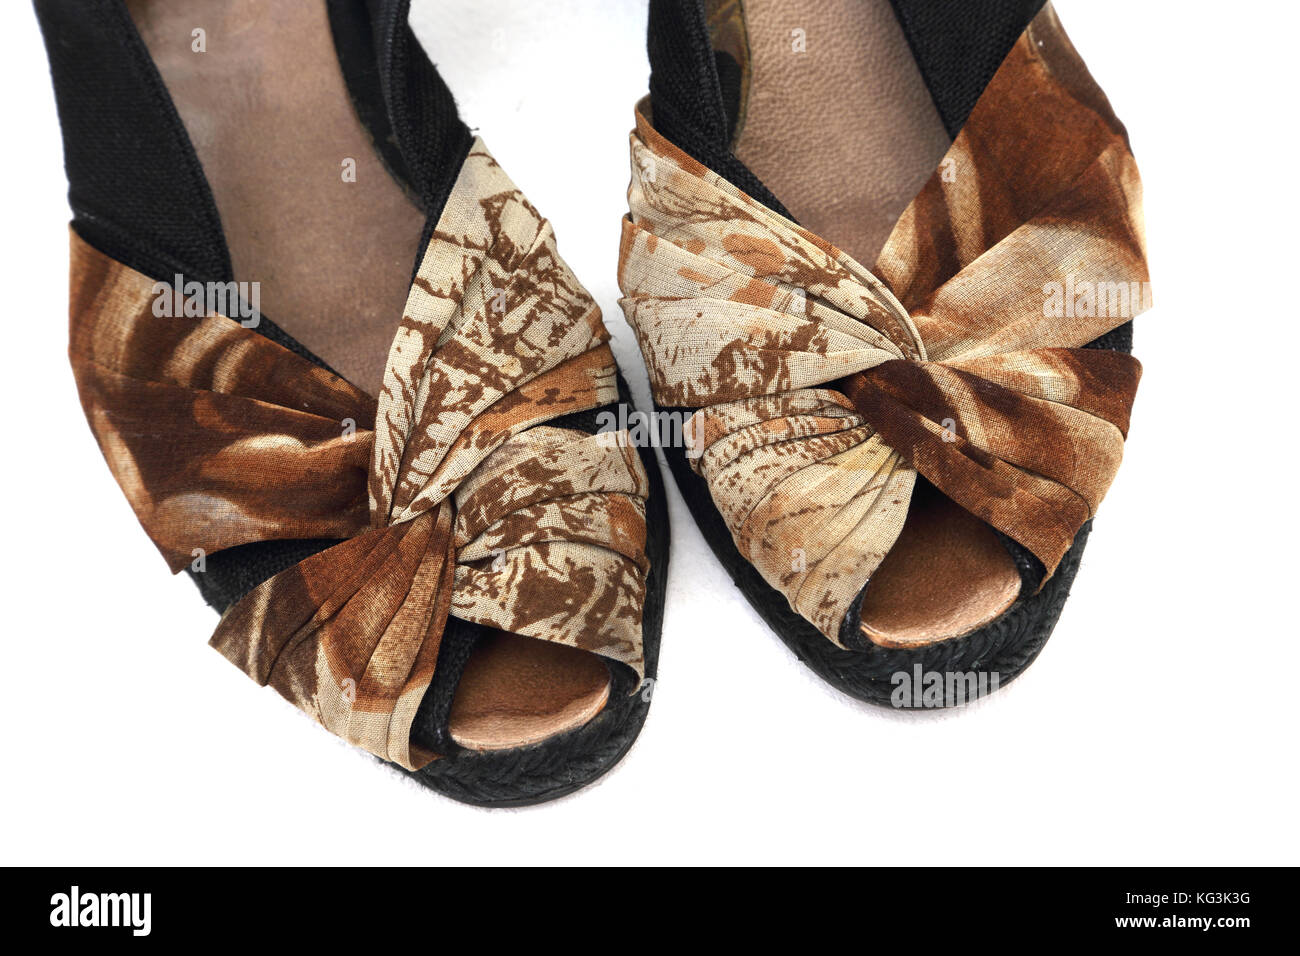 A Pair of Slingback Wedged Sandals - Stock Image